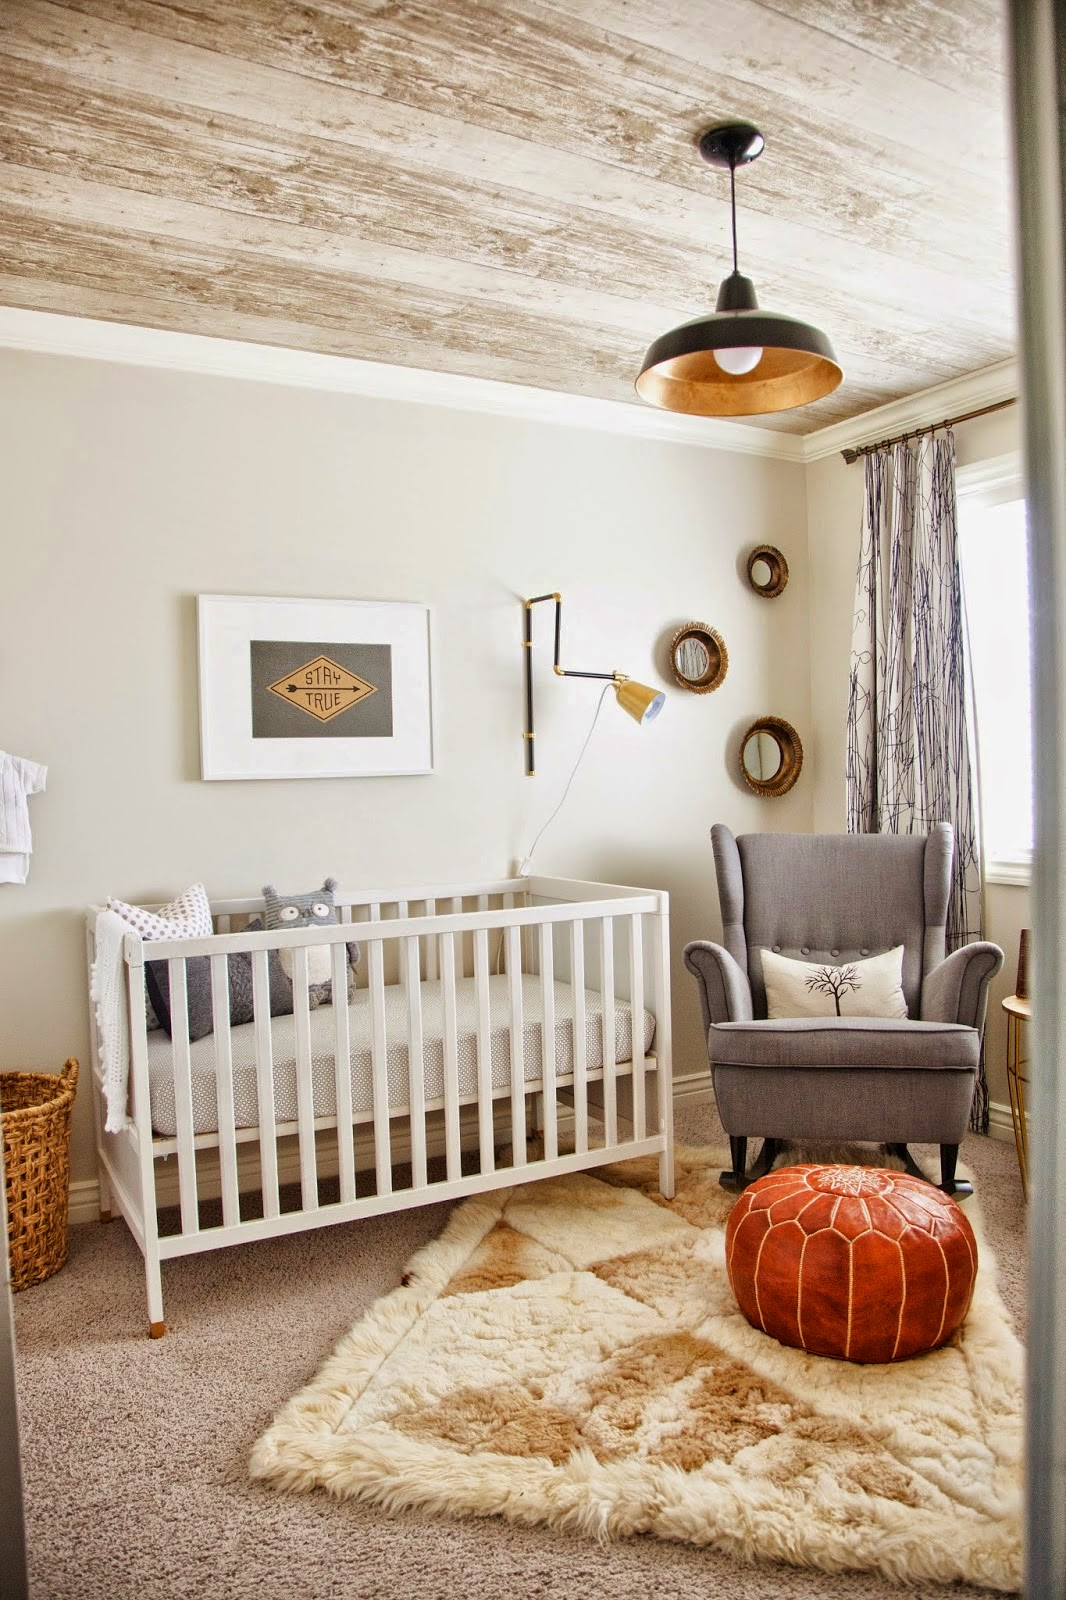 I Love This Clever DIY, The Chair Was Converted To A Rocker For A Nursery.